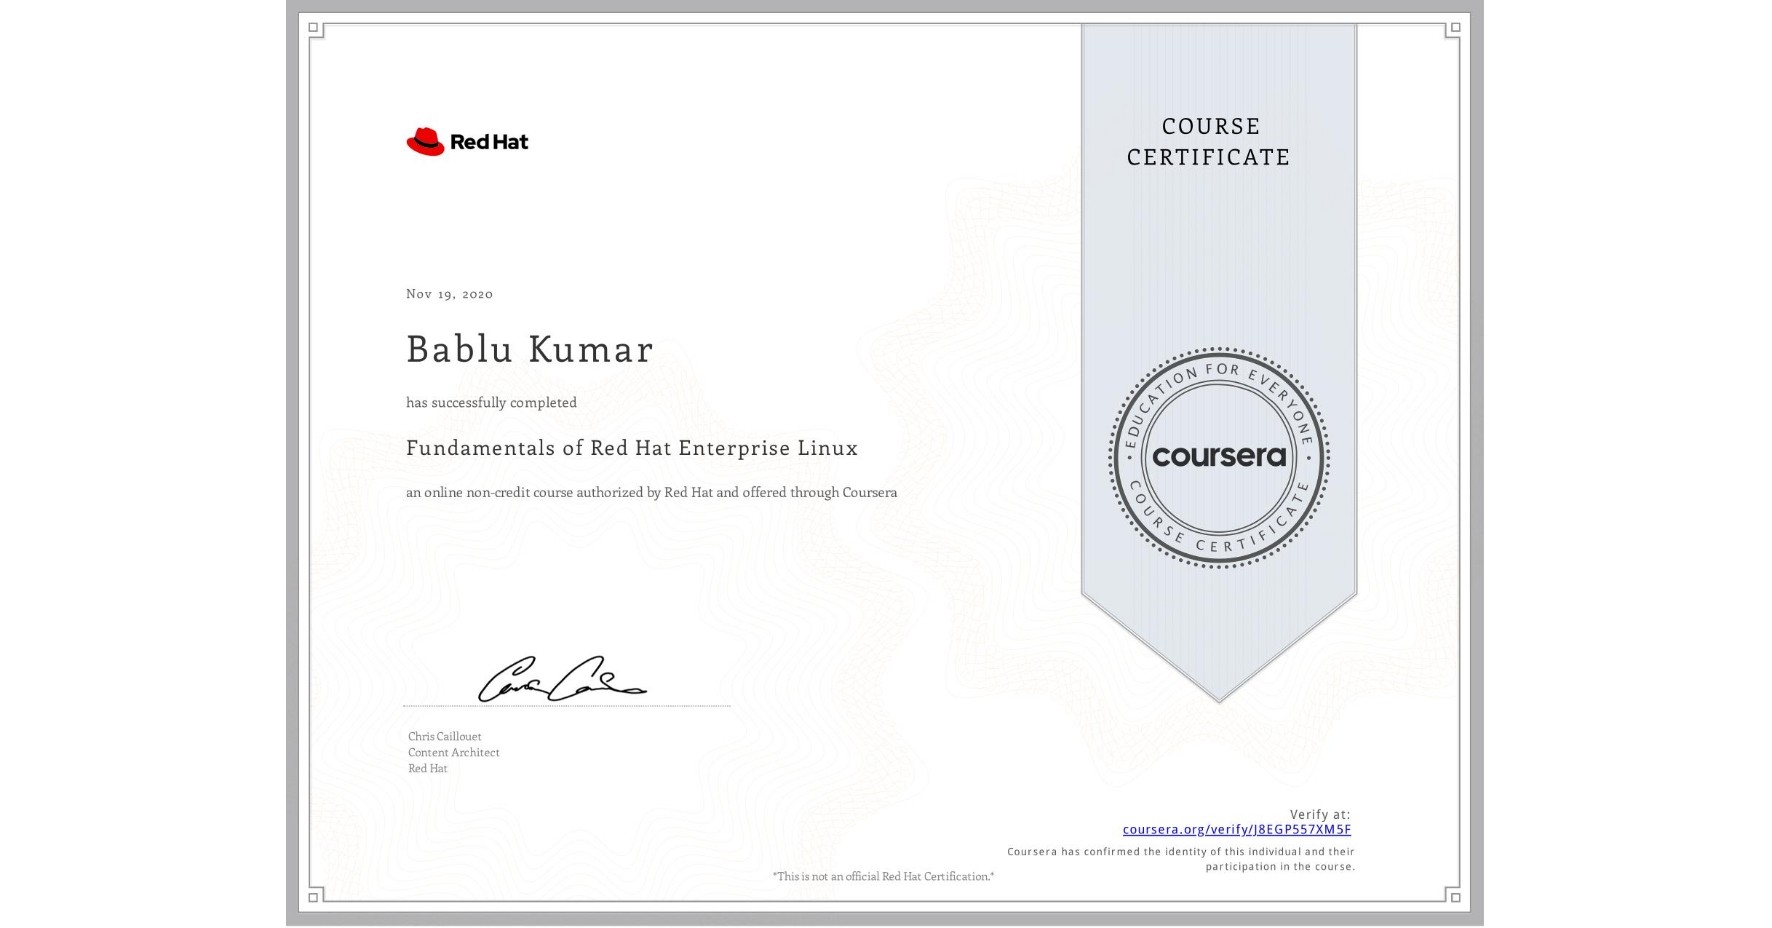 View certificate for Bablu Kumar, Fundamentals of Red Hat Enterprise Linux, an online non-credit course authorized by Red Hat and offered through Coursera